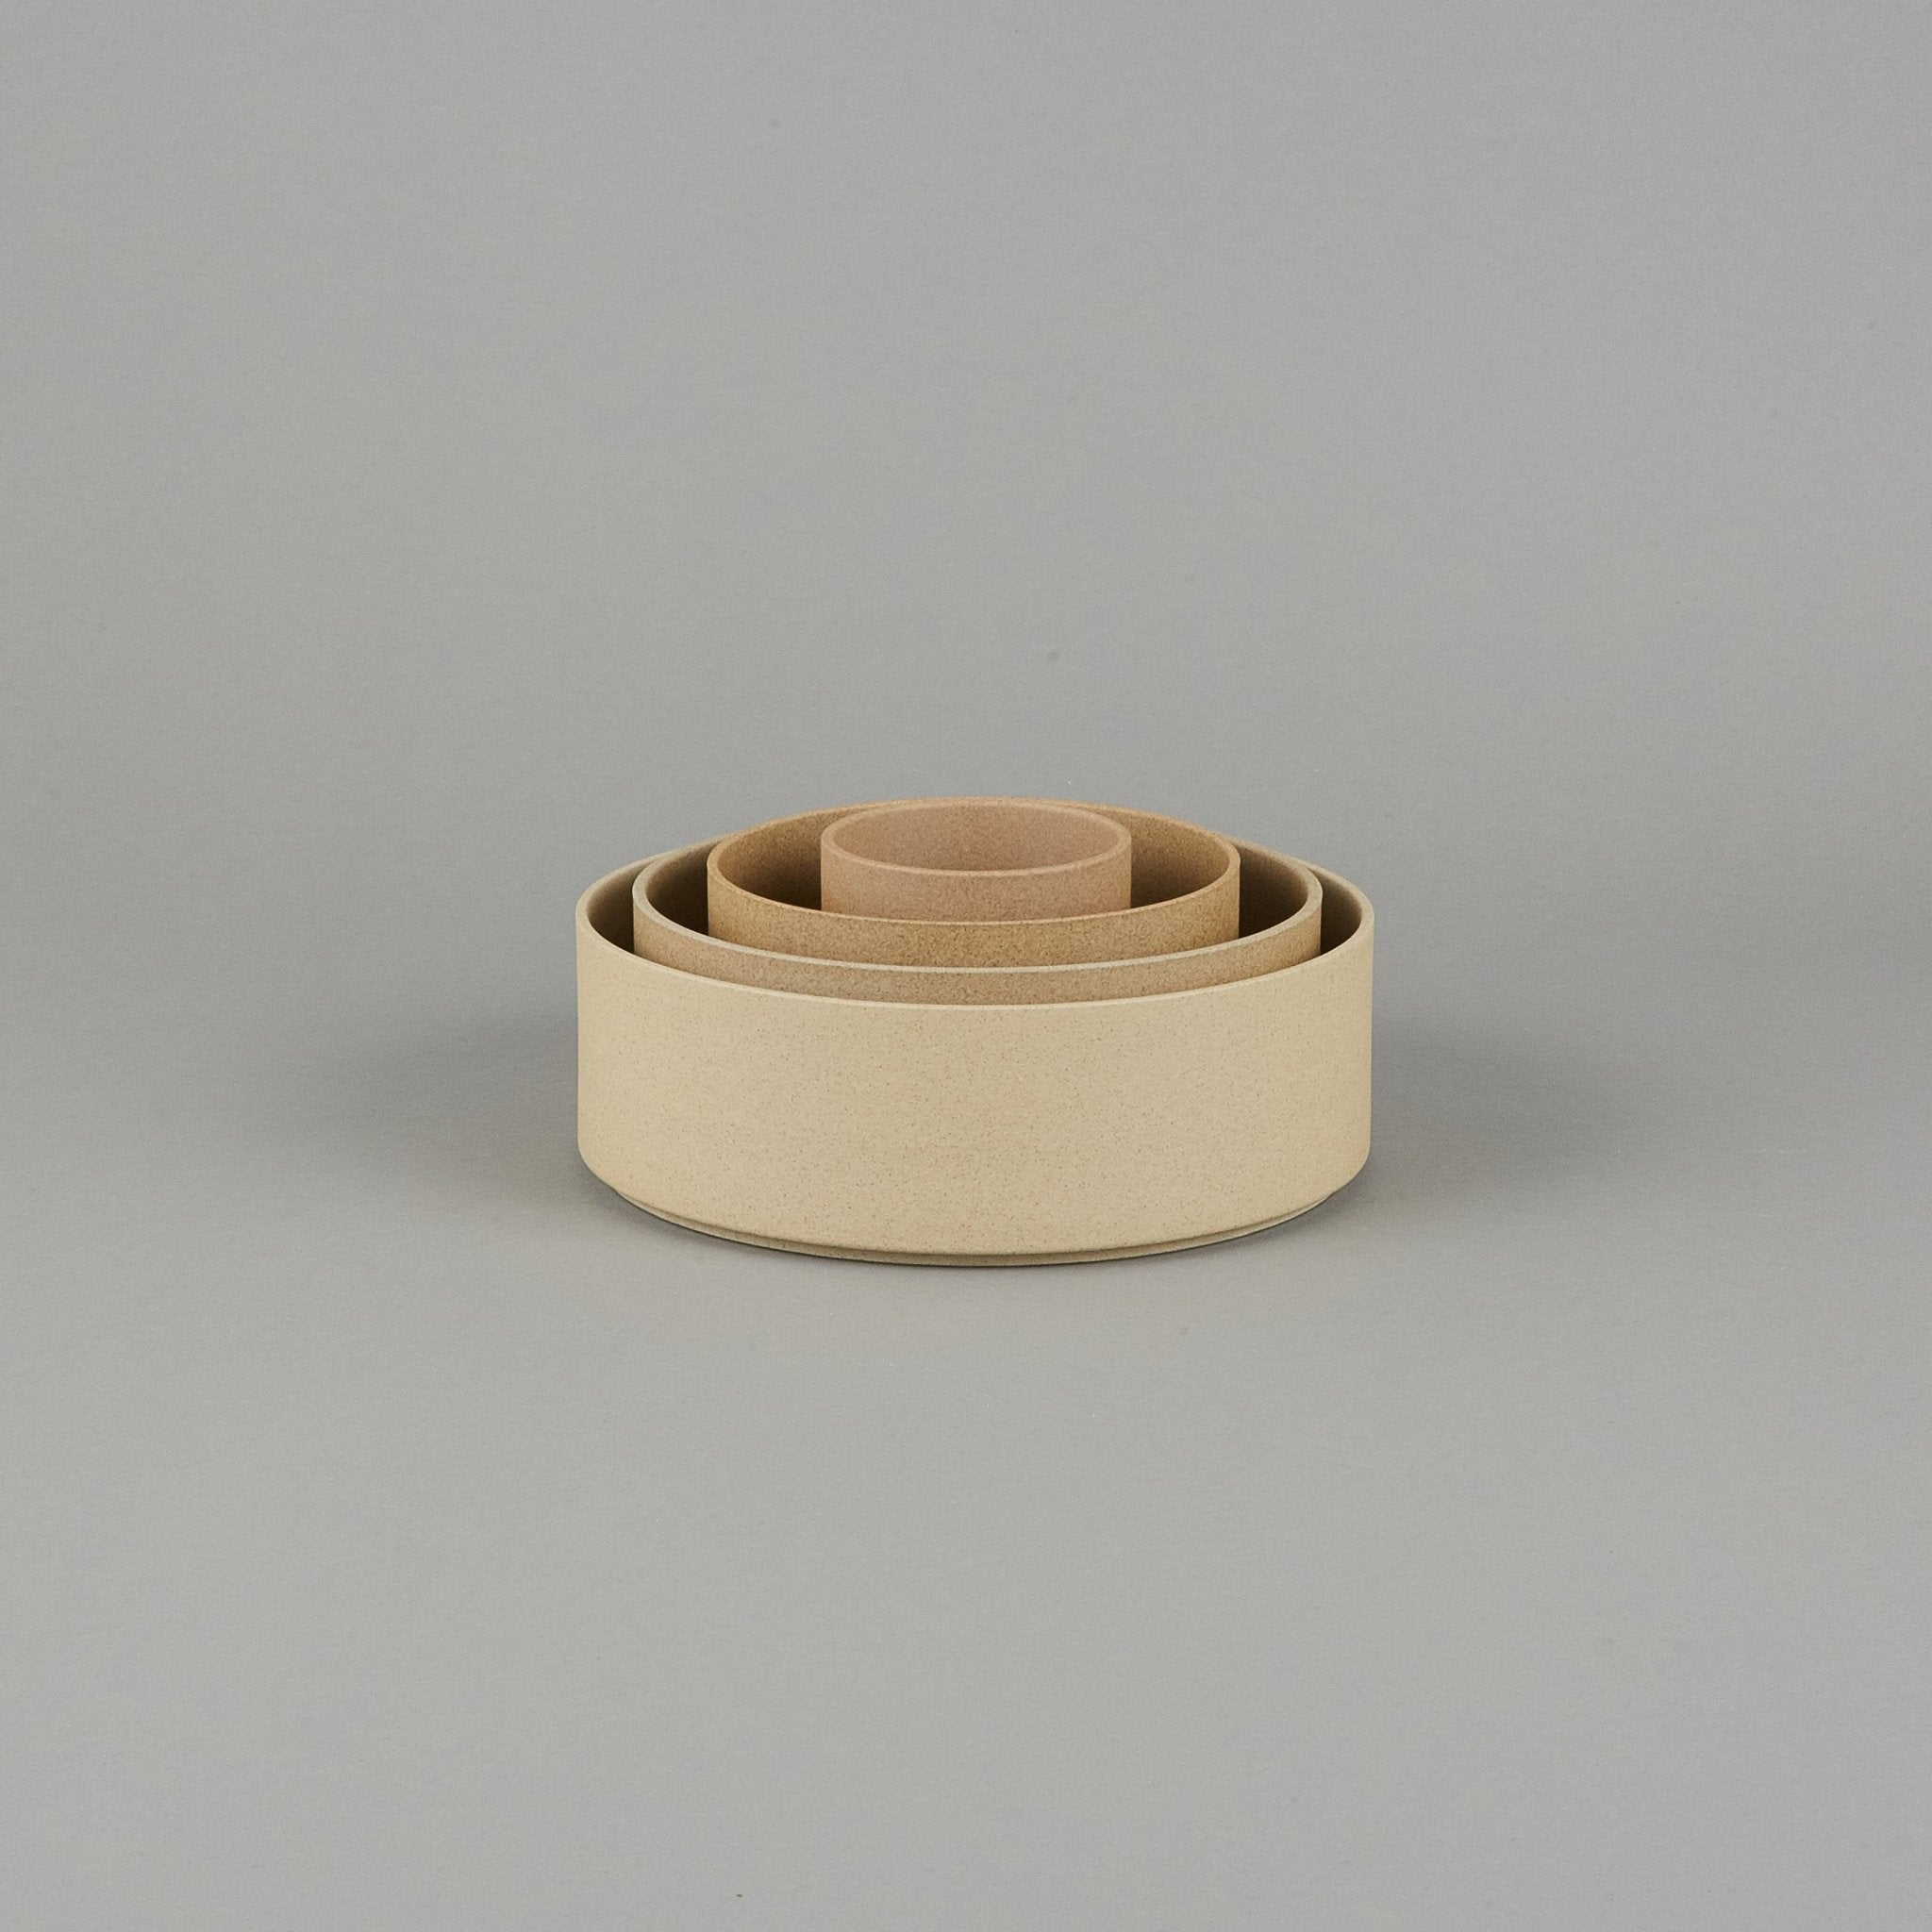 "HP013 - Bowl Tall Natural ø 3.3/8"" - tortoise general store"